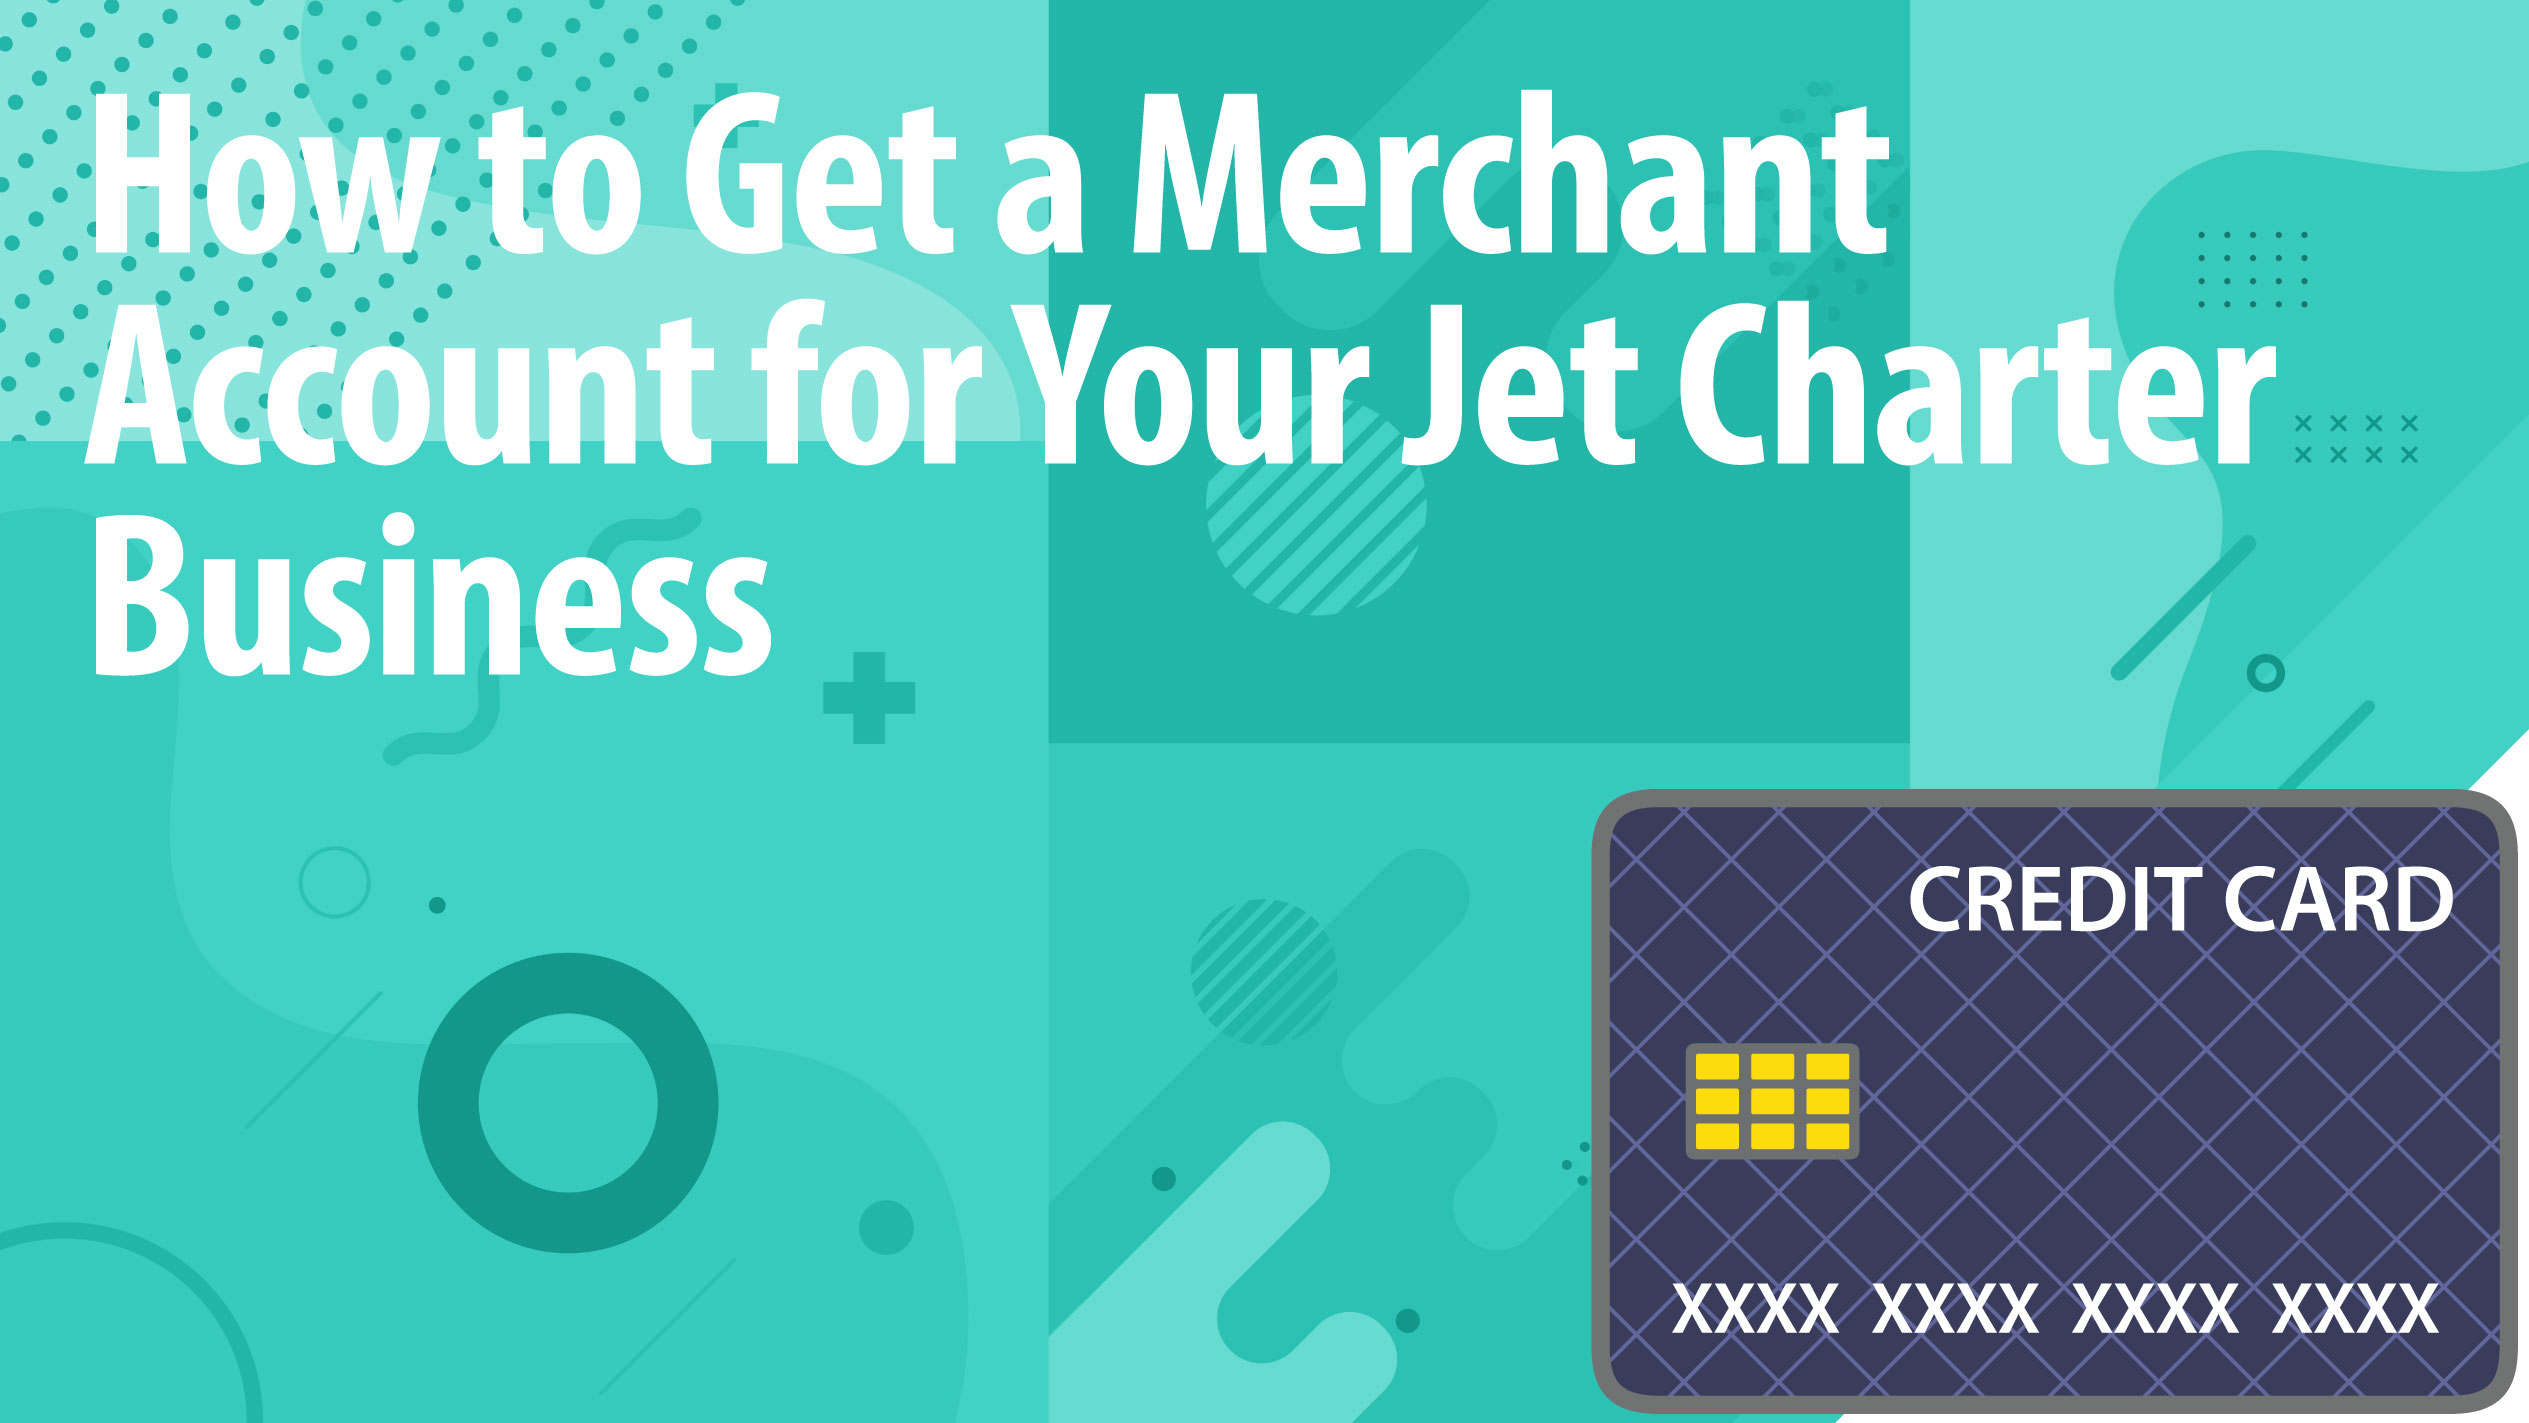 How to Get a Merchant Account for Your Jet Charter Business